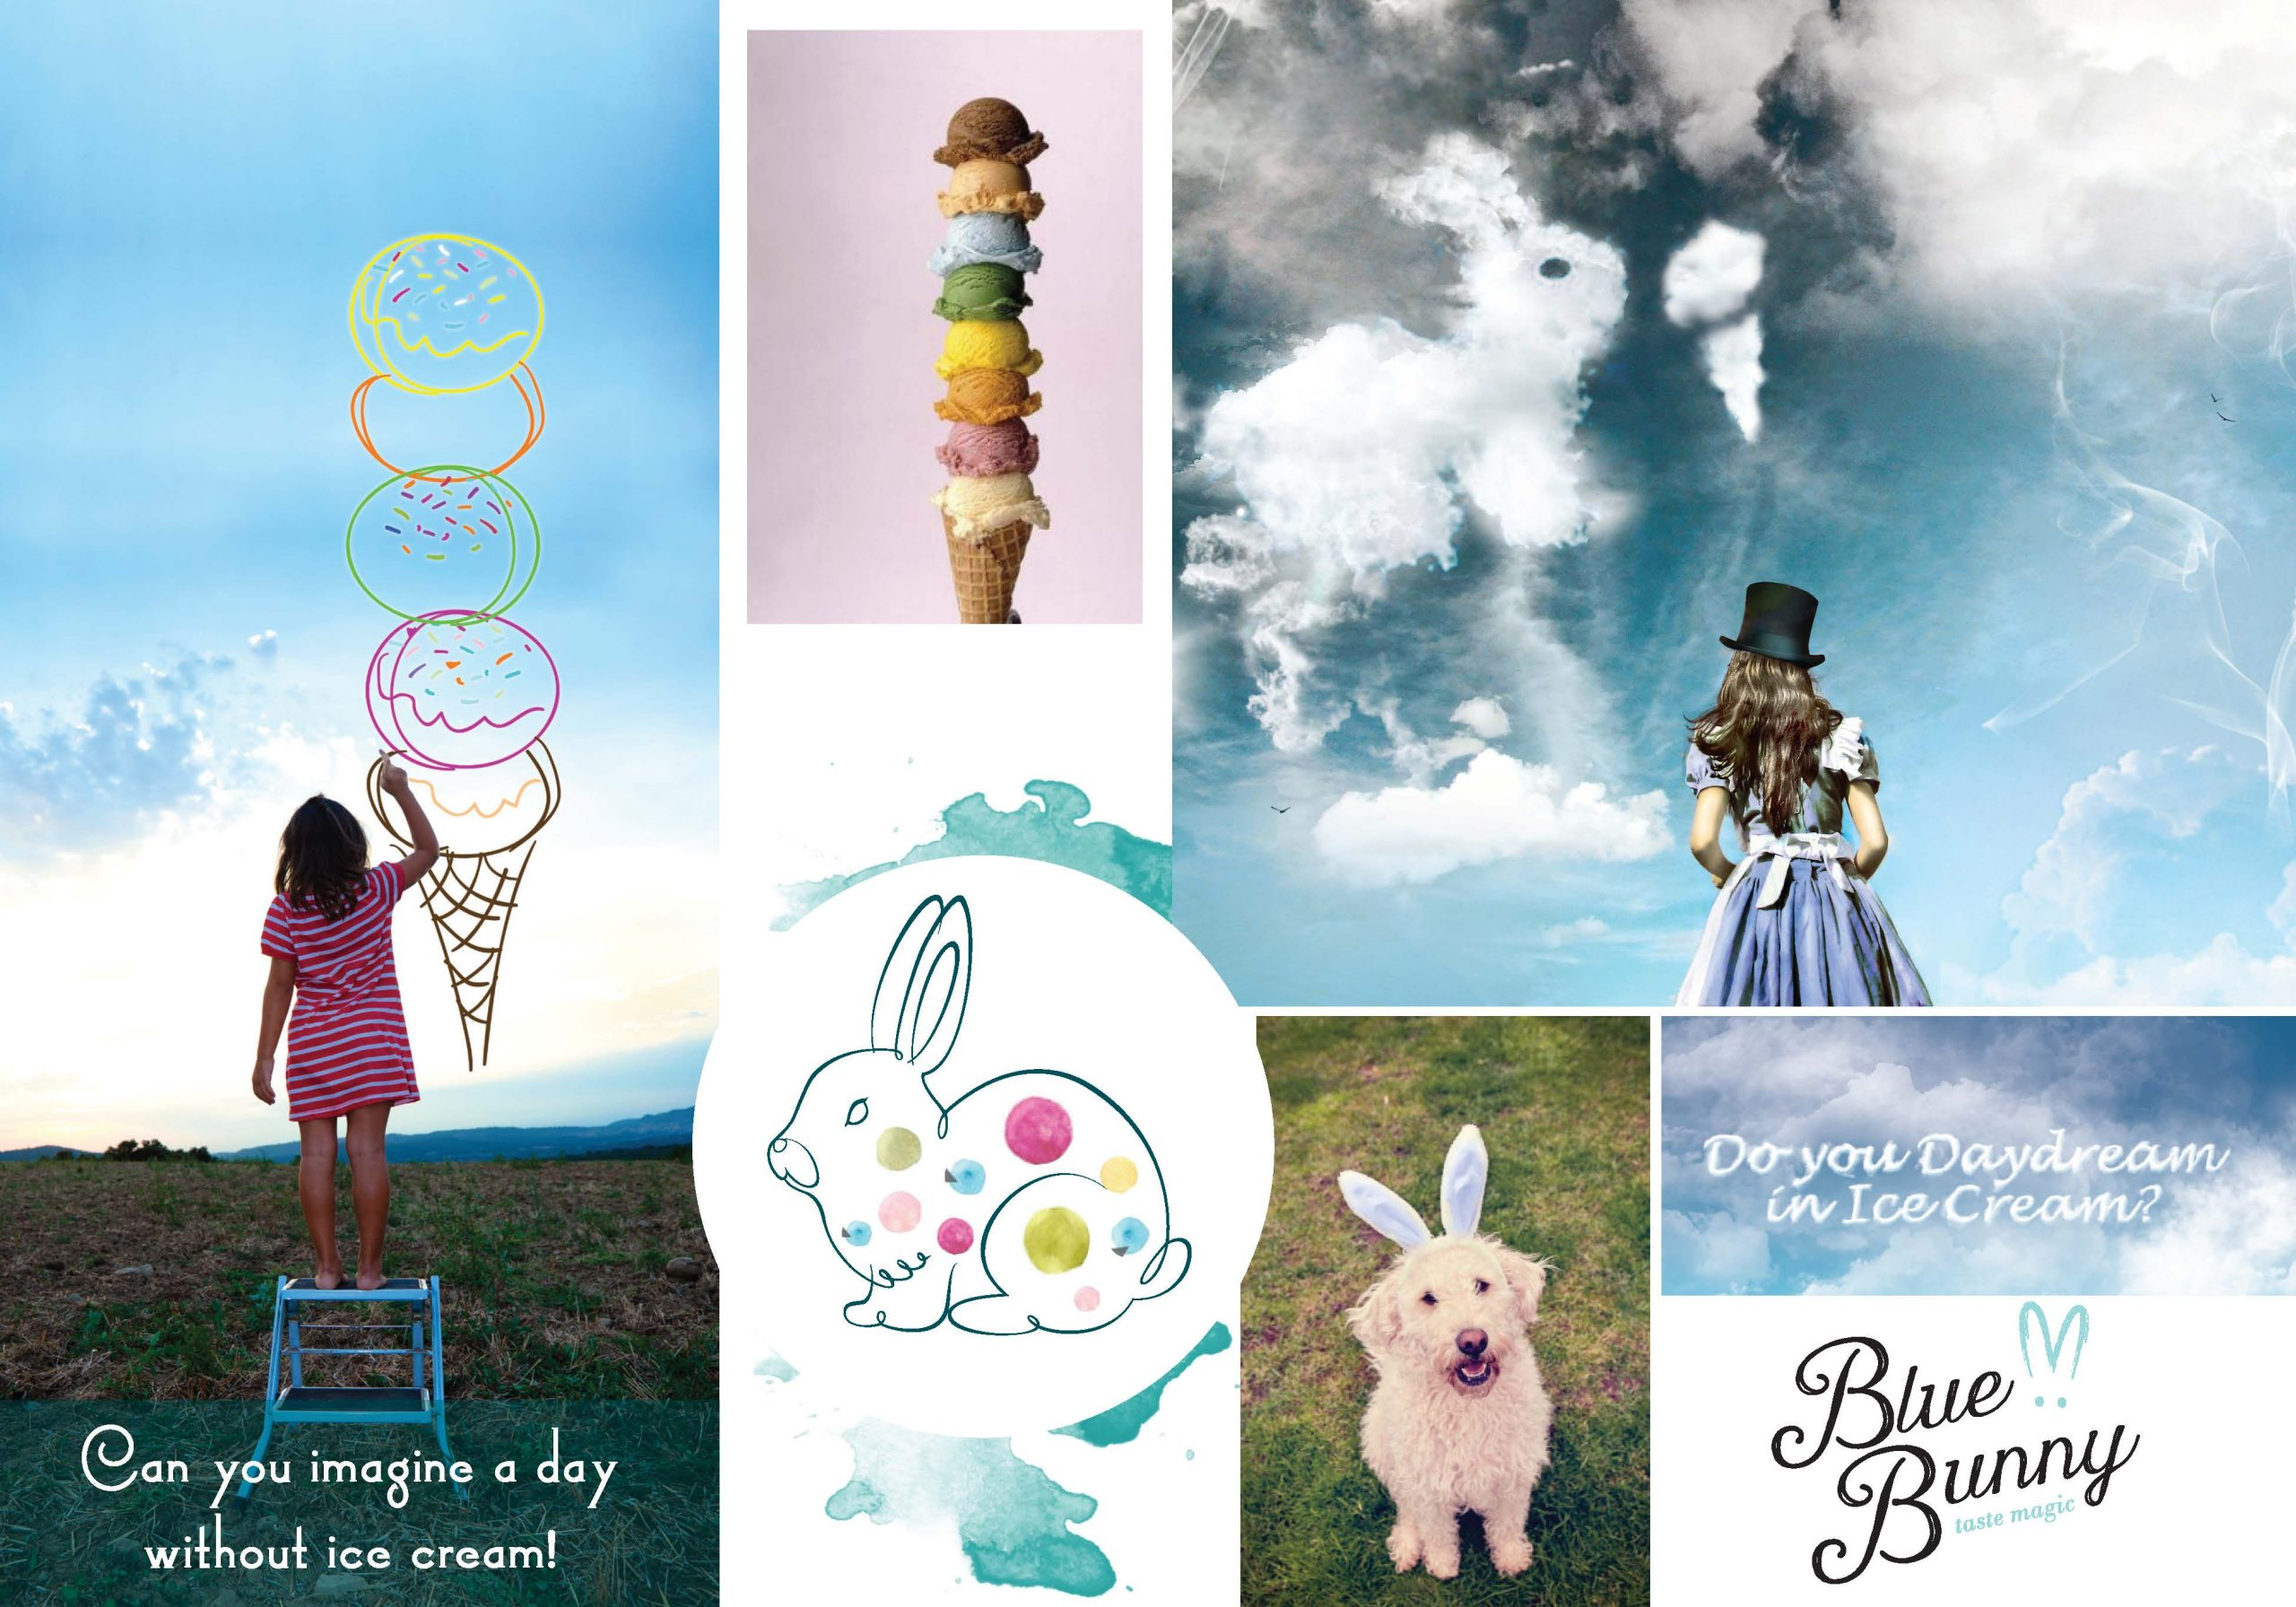 Blue Bunny brand strategy and rebrand ideas